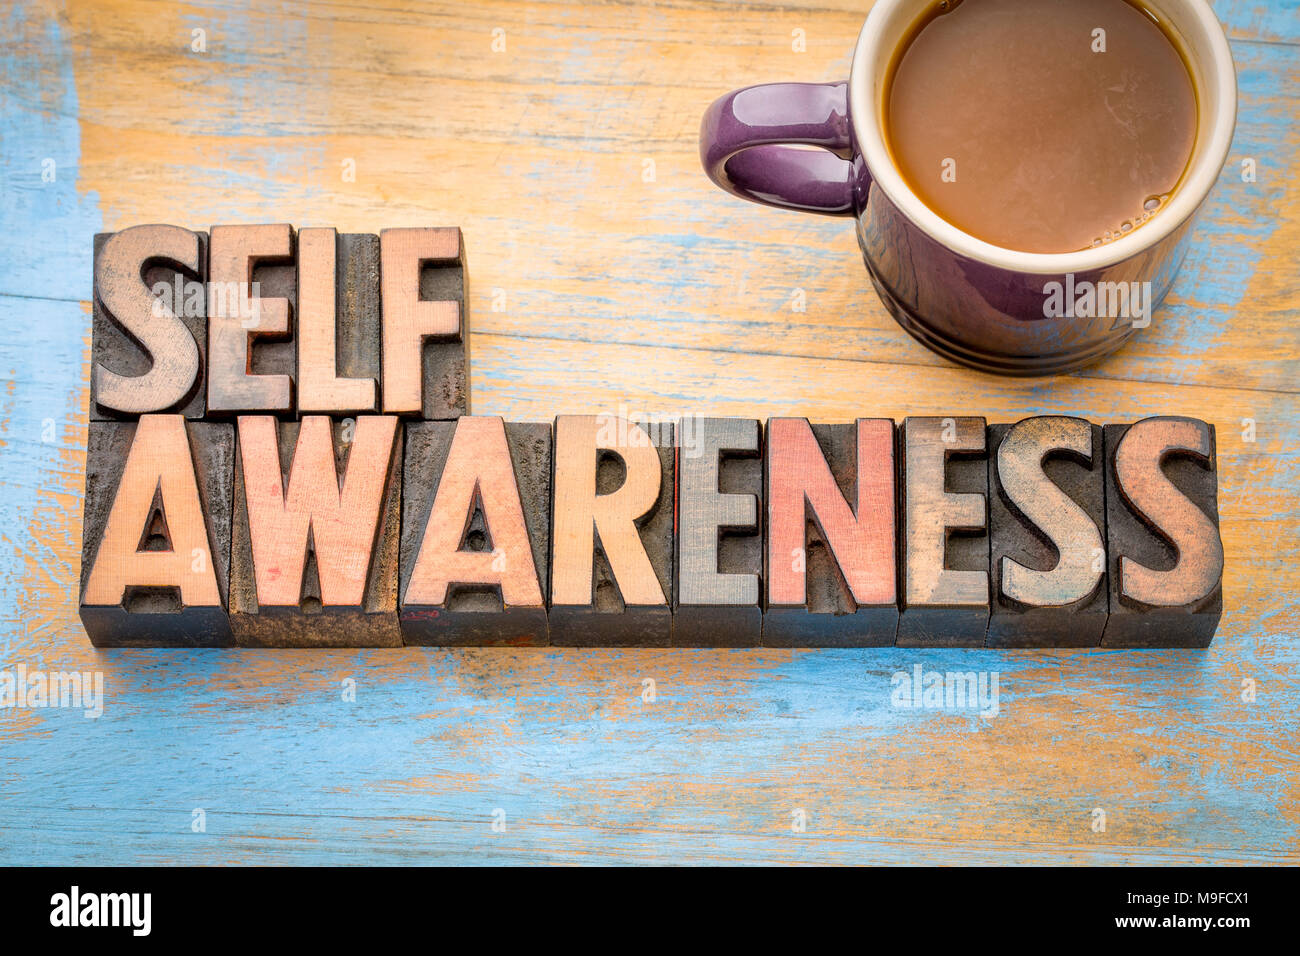 self awareness word abstract in vintage letterpress printing blocks with a cup of coffee - Stock Image